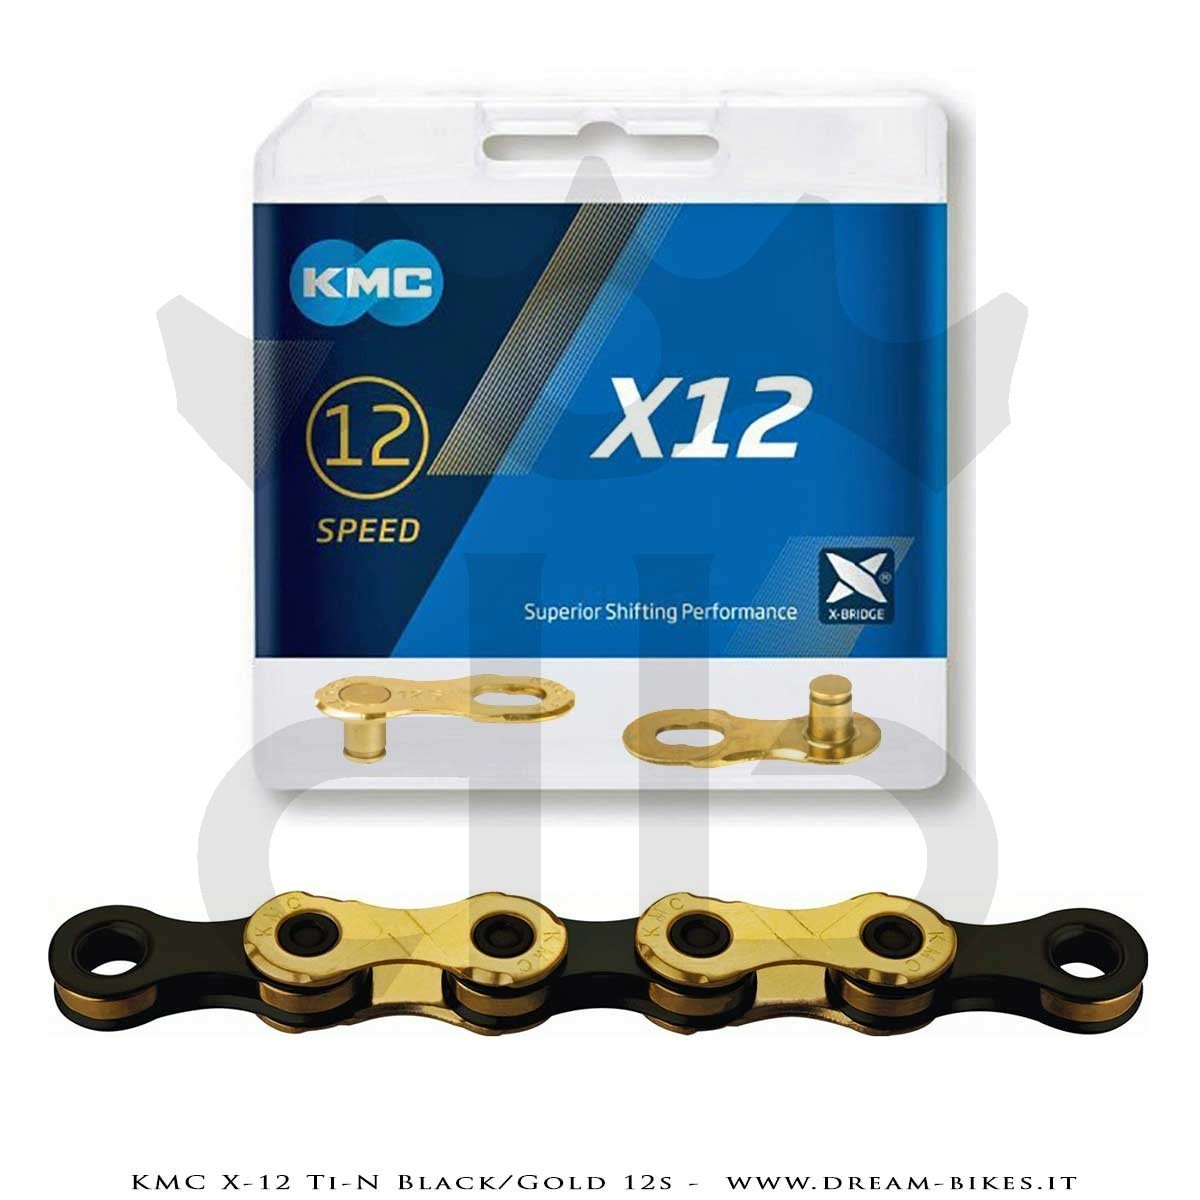 KMC X-12 Ti-N GOLD/BLACK CATENA 12V 268 Gr.